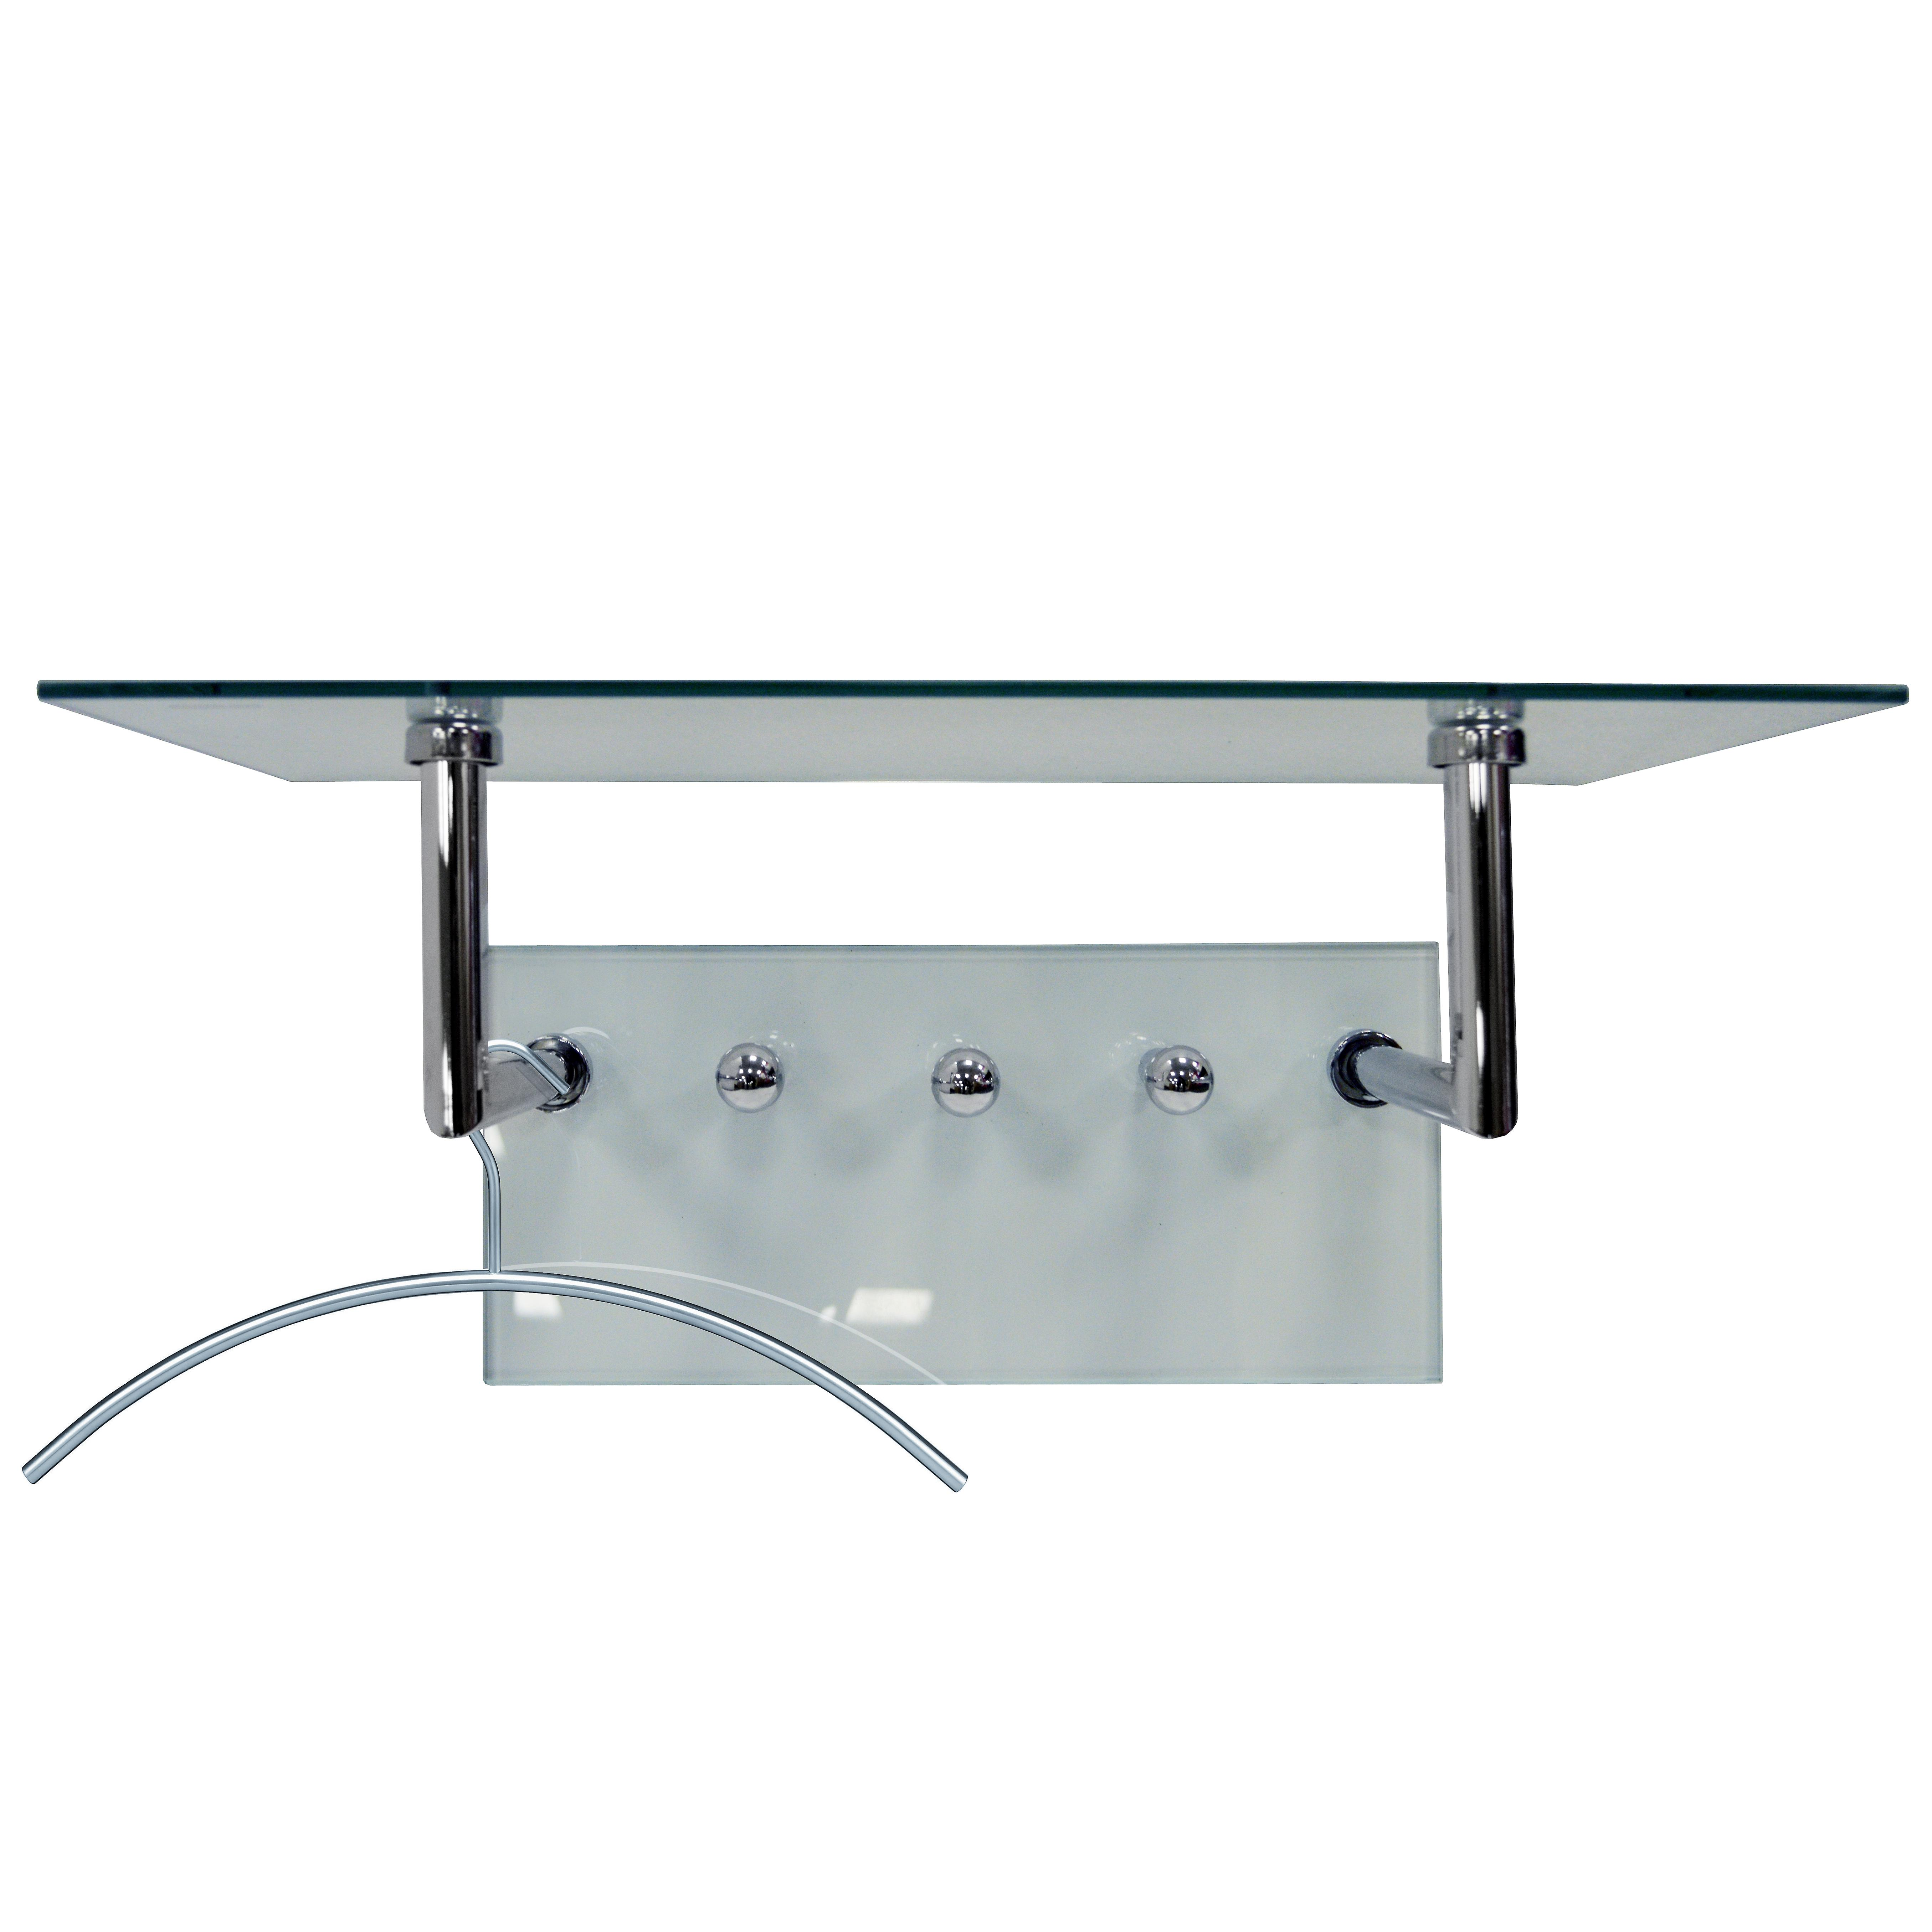 Ghost - Glass And Metal Wall Shelf With Coat Hanging Pegs - Silver / Clear